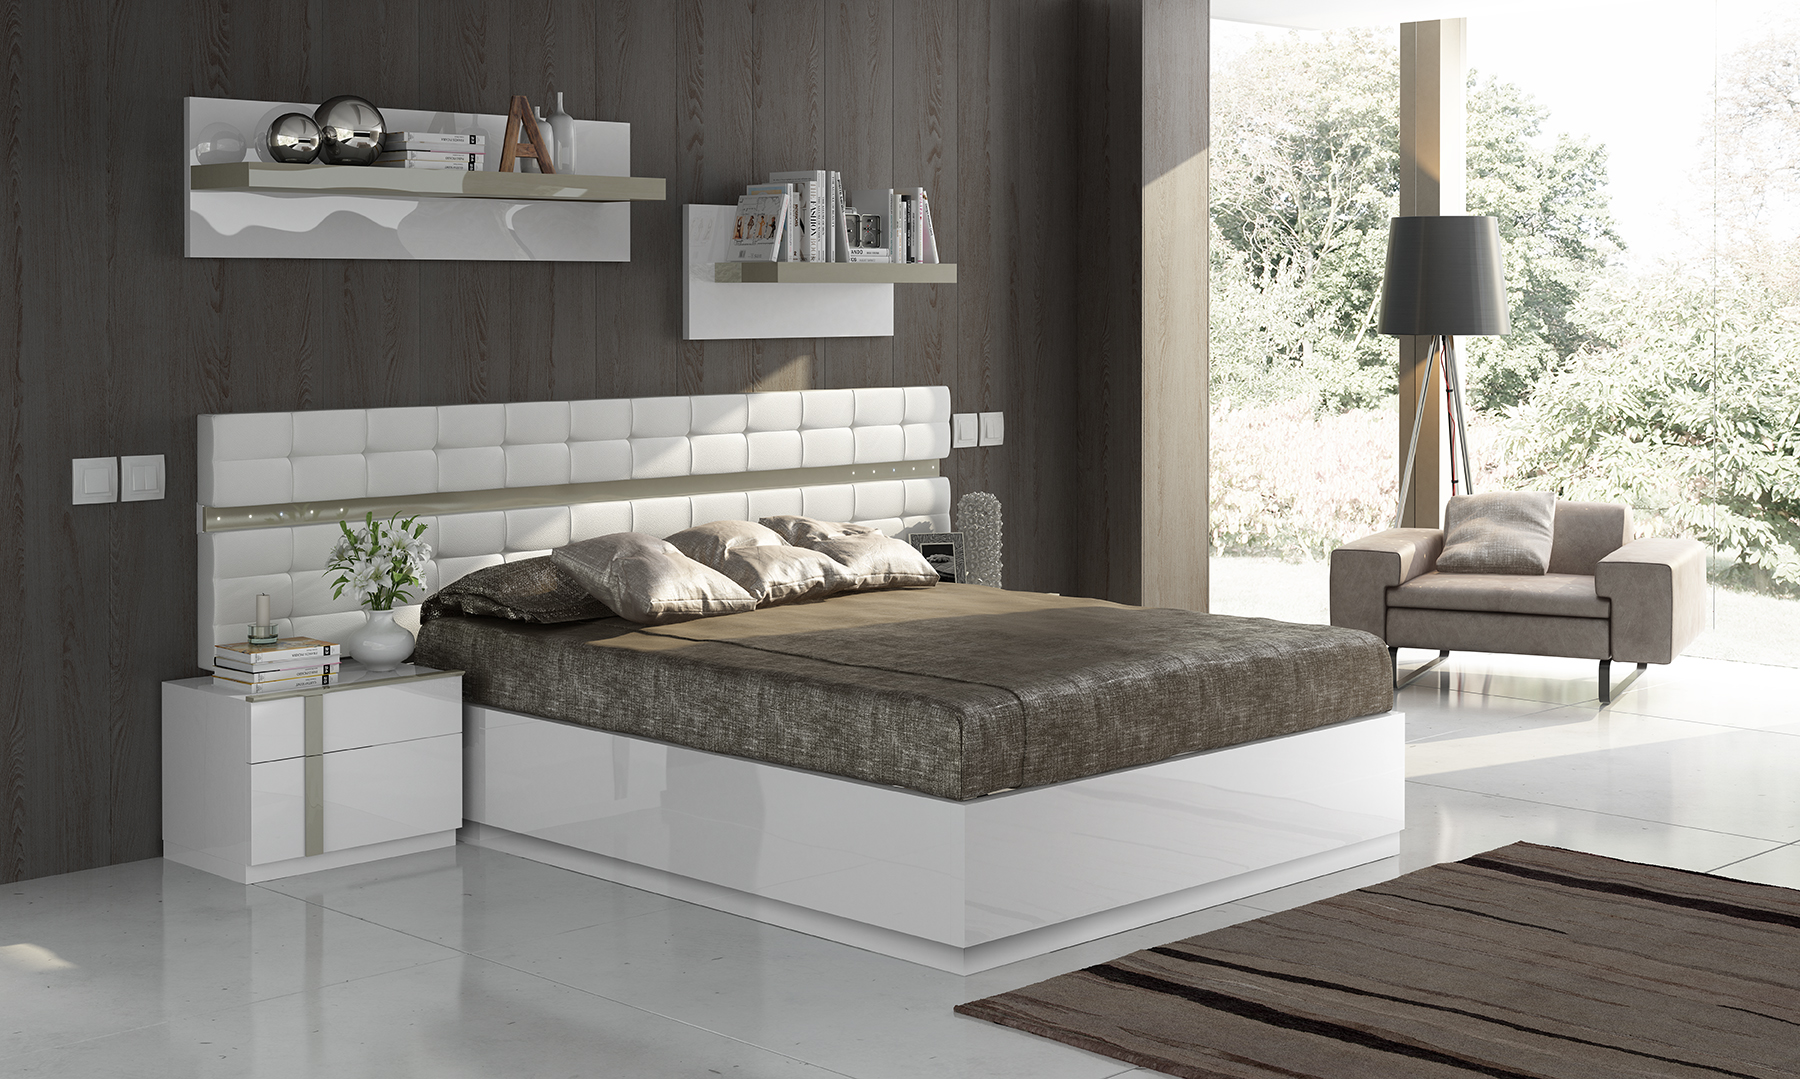 made in spain wood high end platform bed with extra storage rh primeclassicdesign com